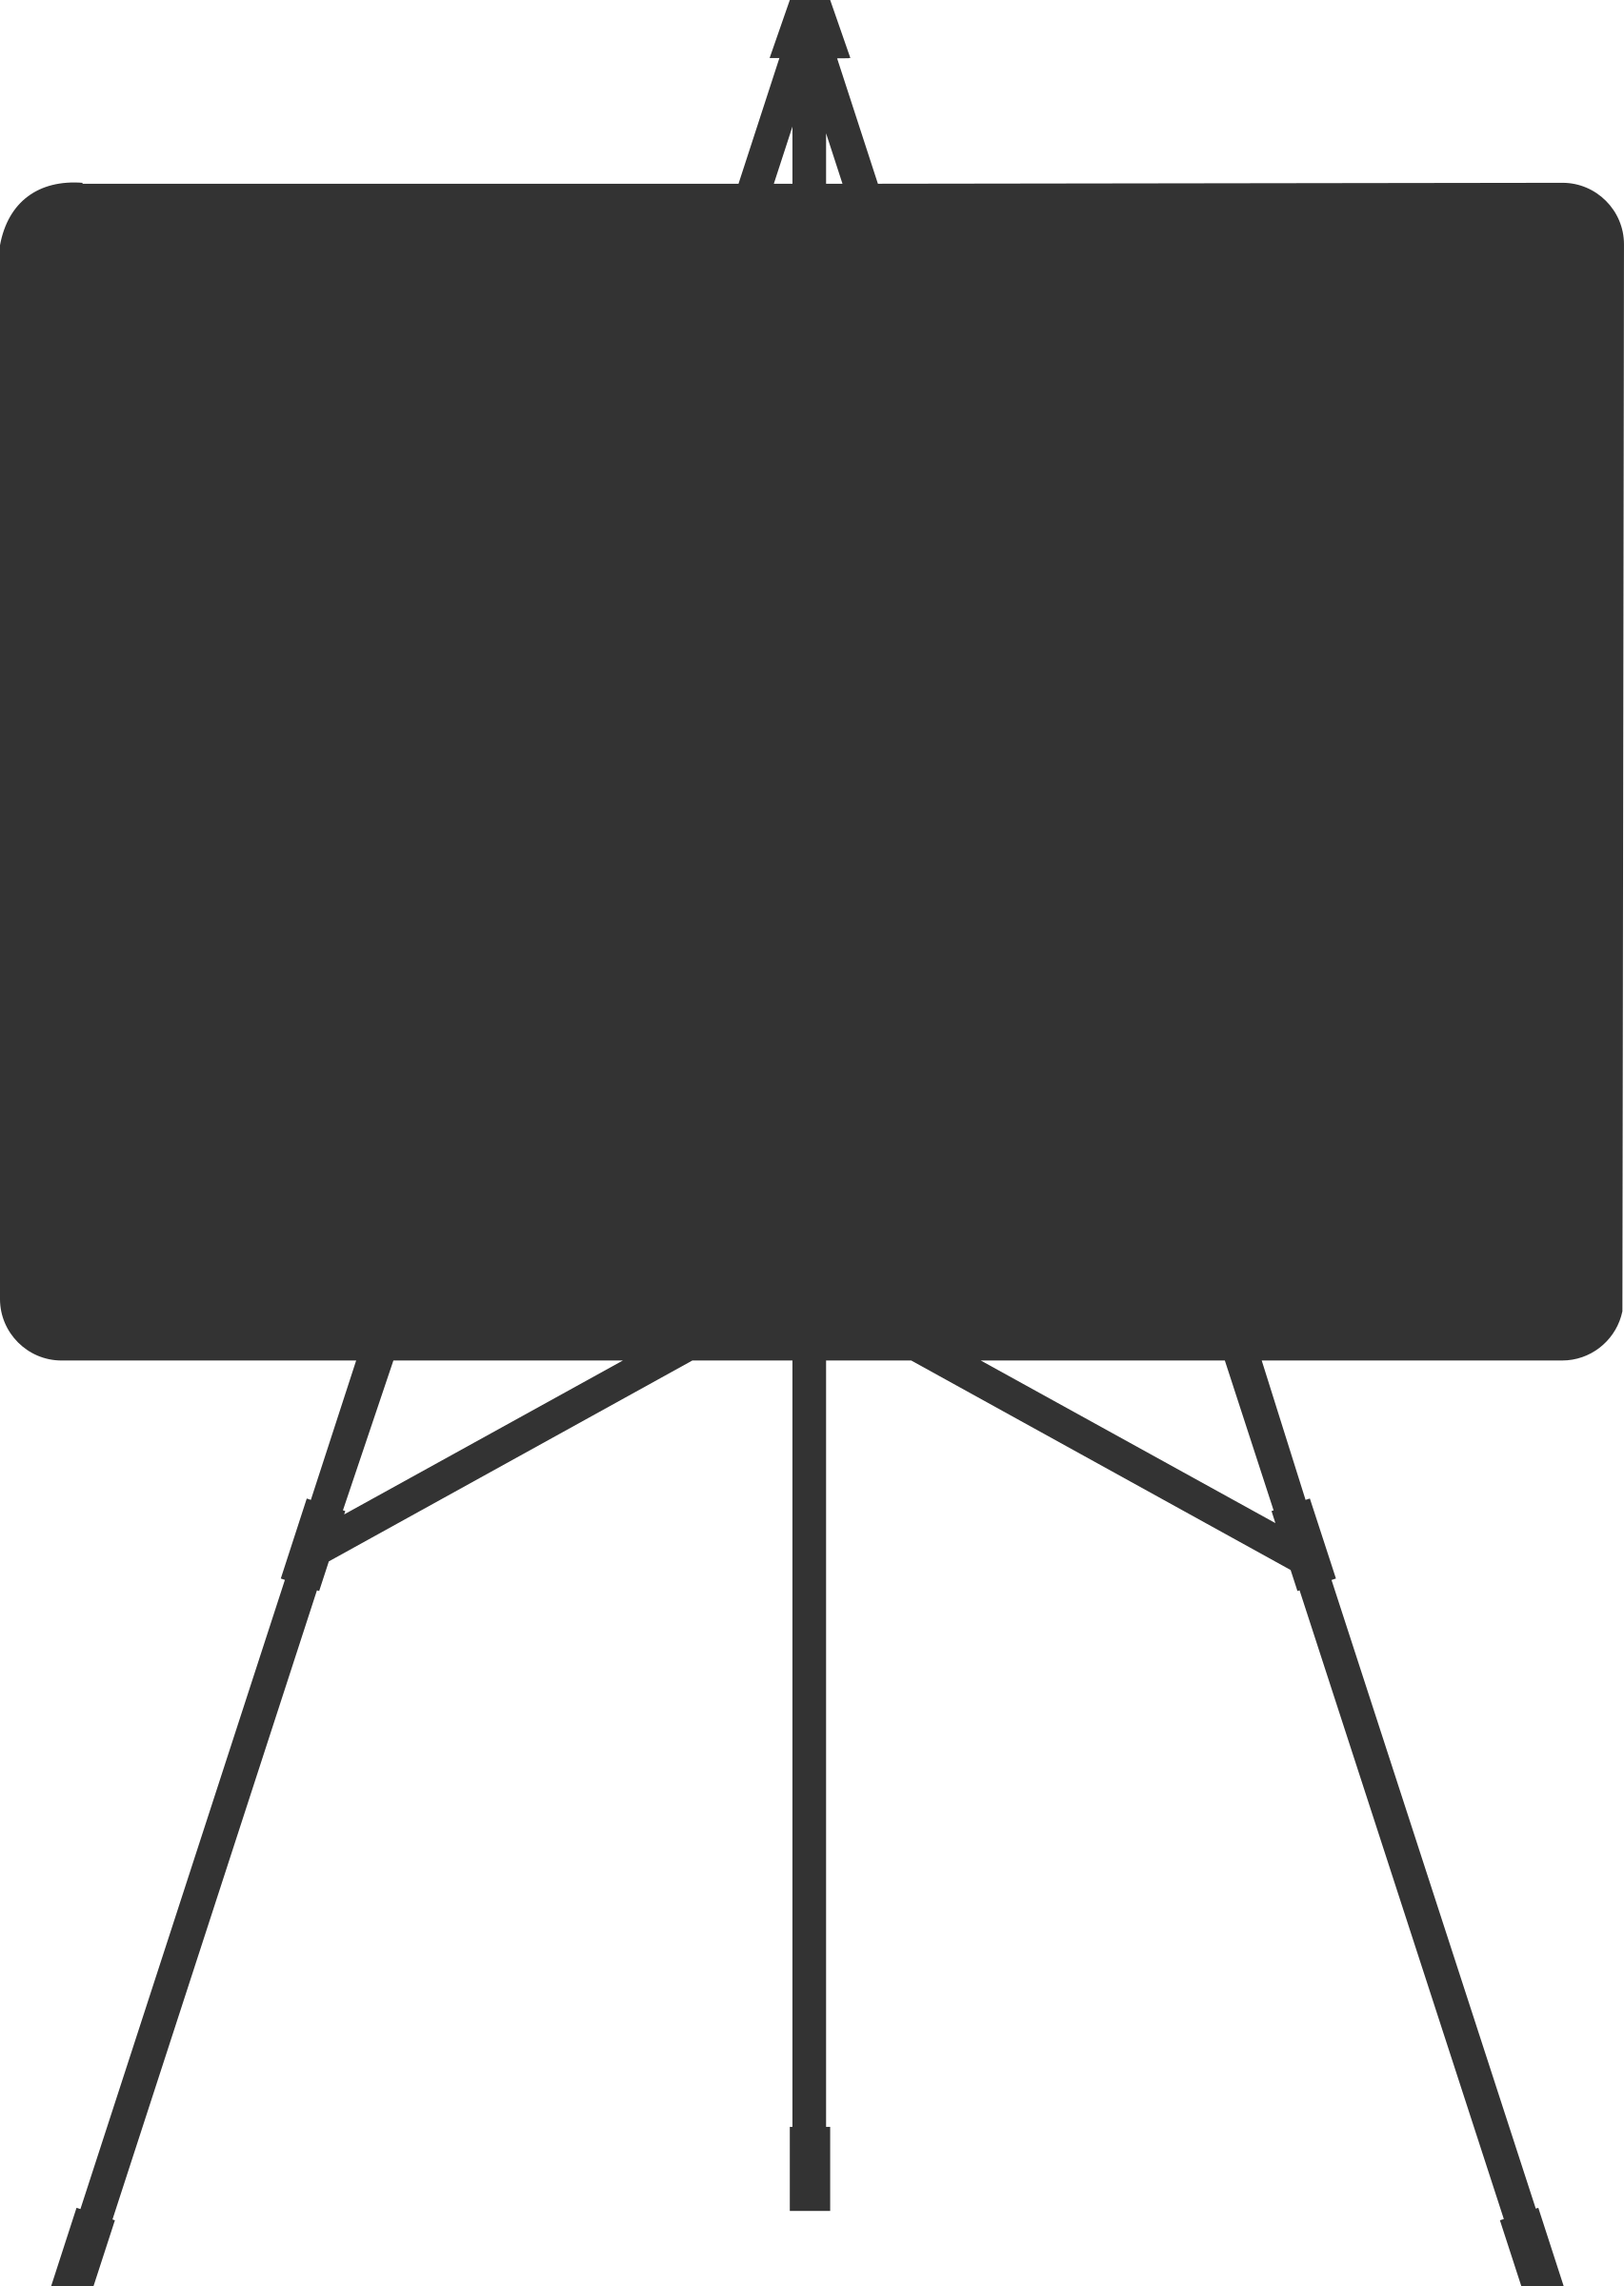 Board drawing writing. Download png image mart